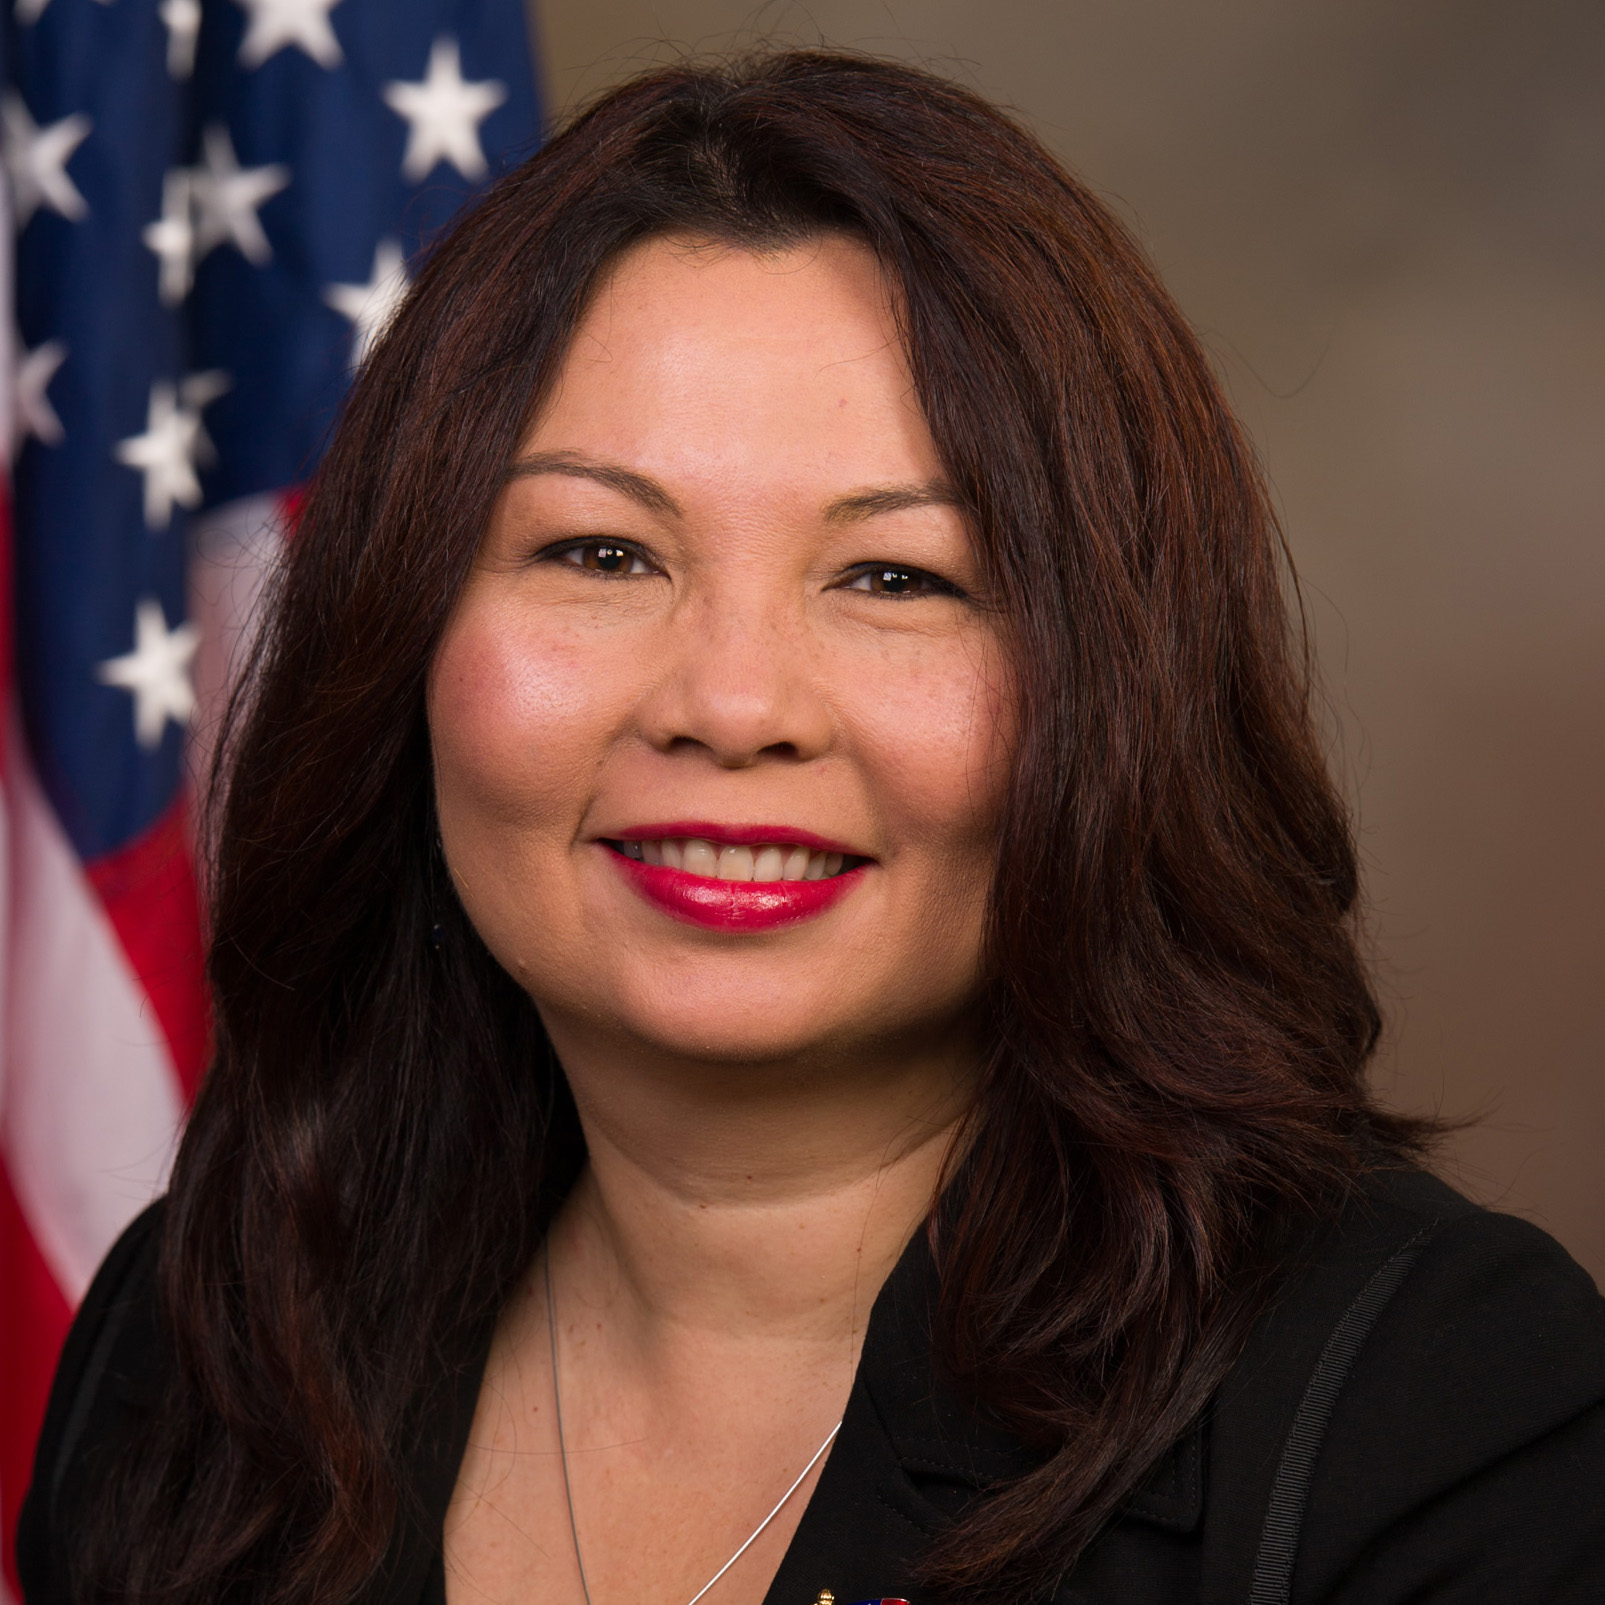 Tammy Duckworth - U.S. Senator from Illinois